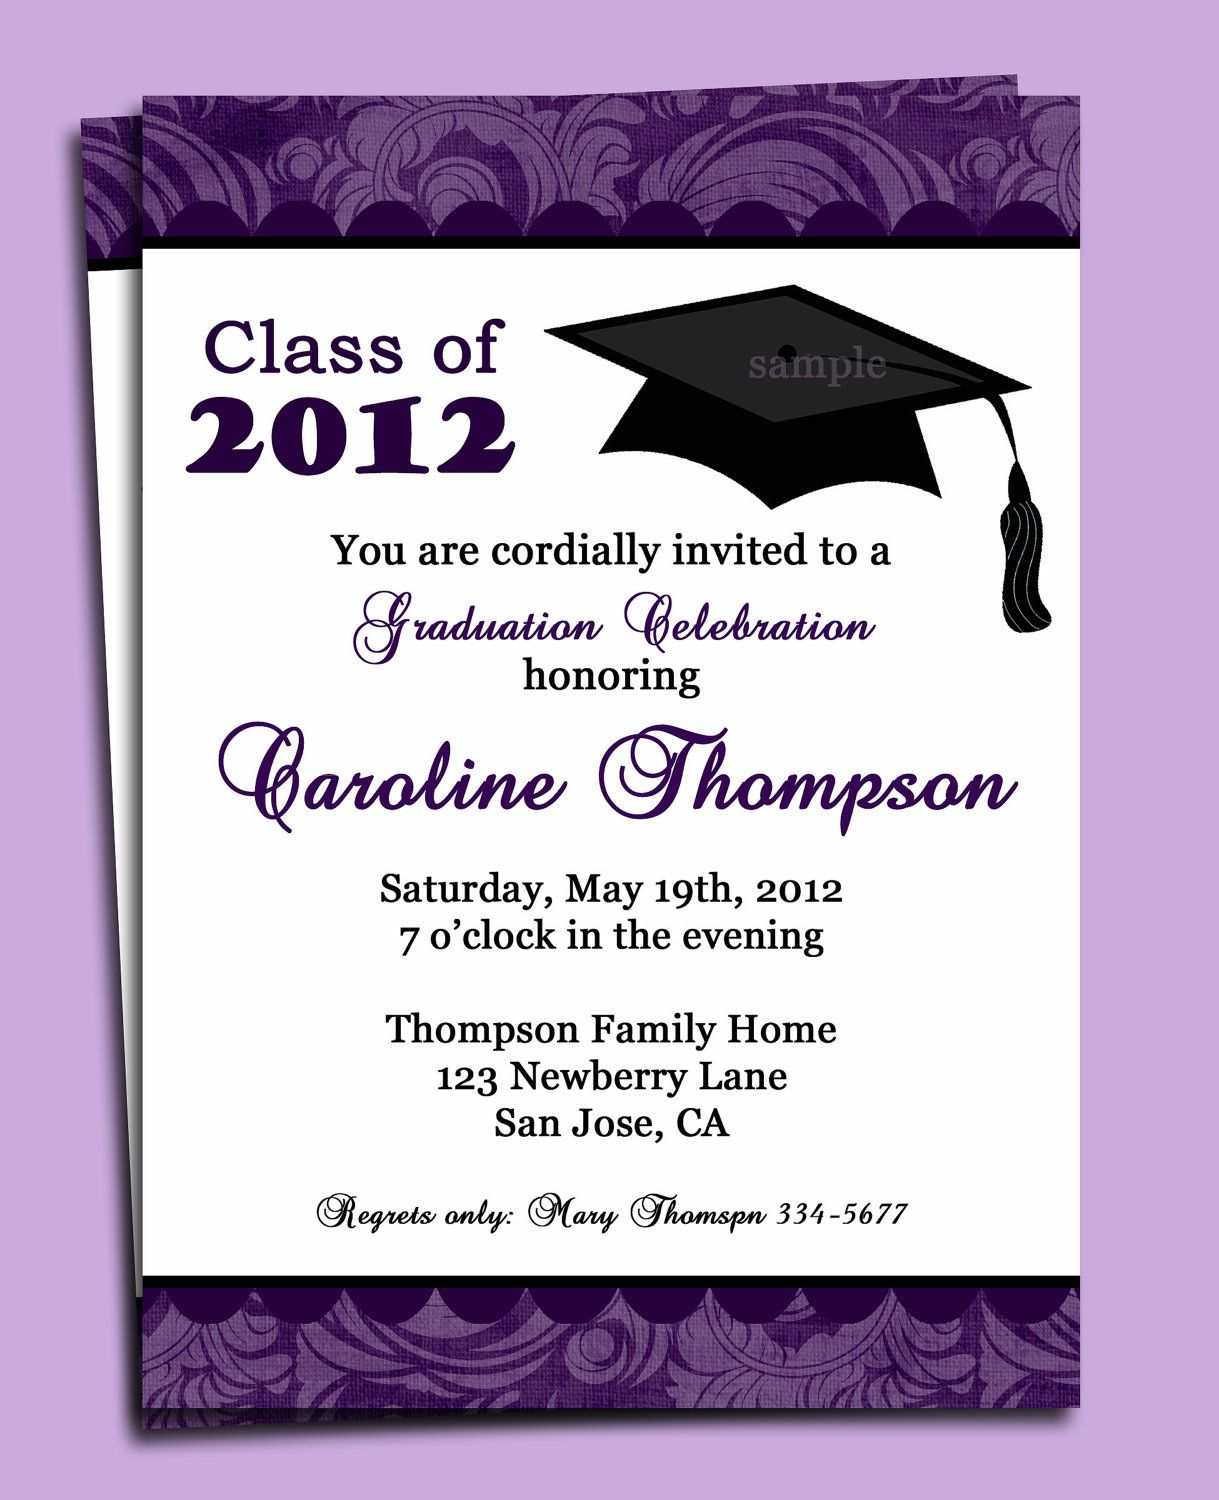 collection of thousands of free graduation invitation template, Party invitations